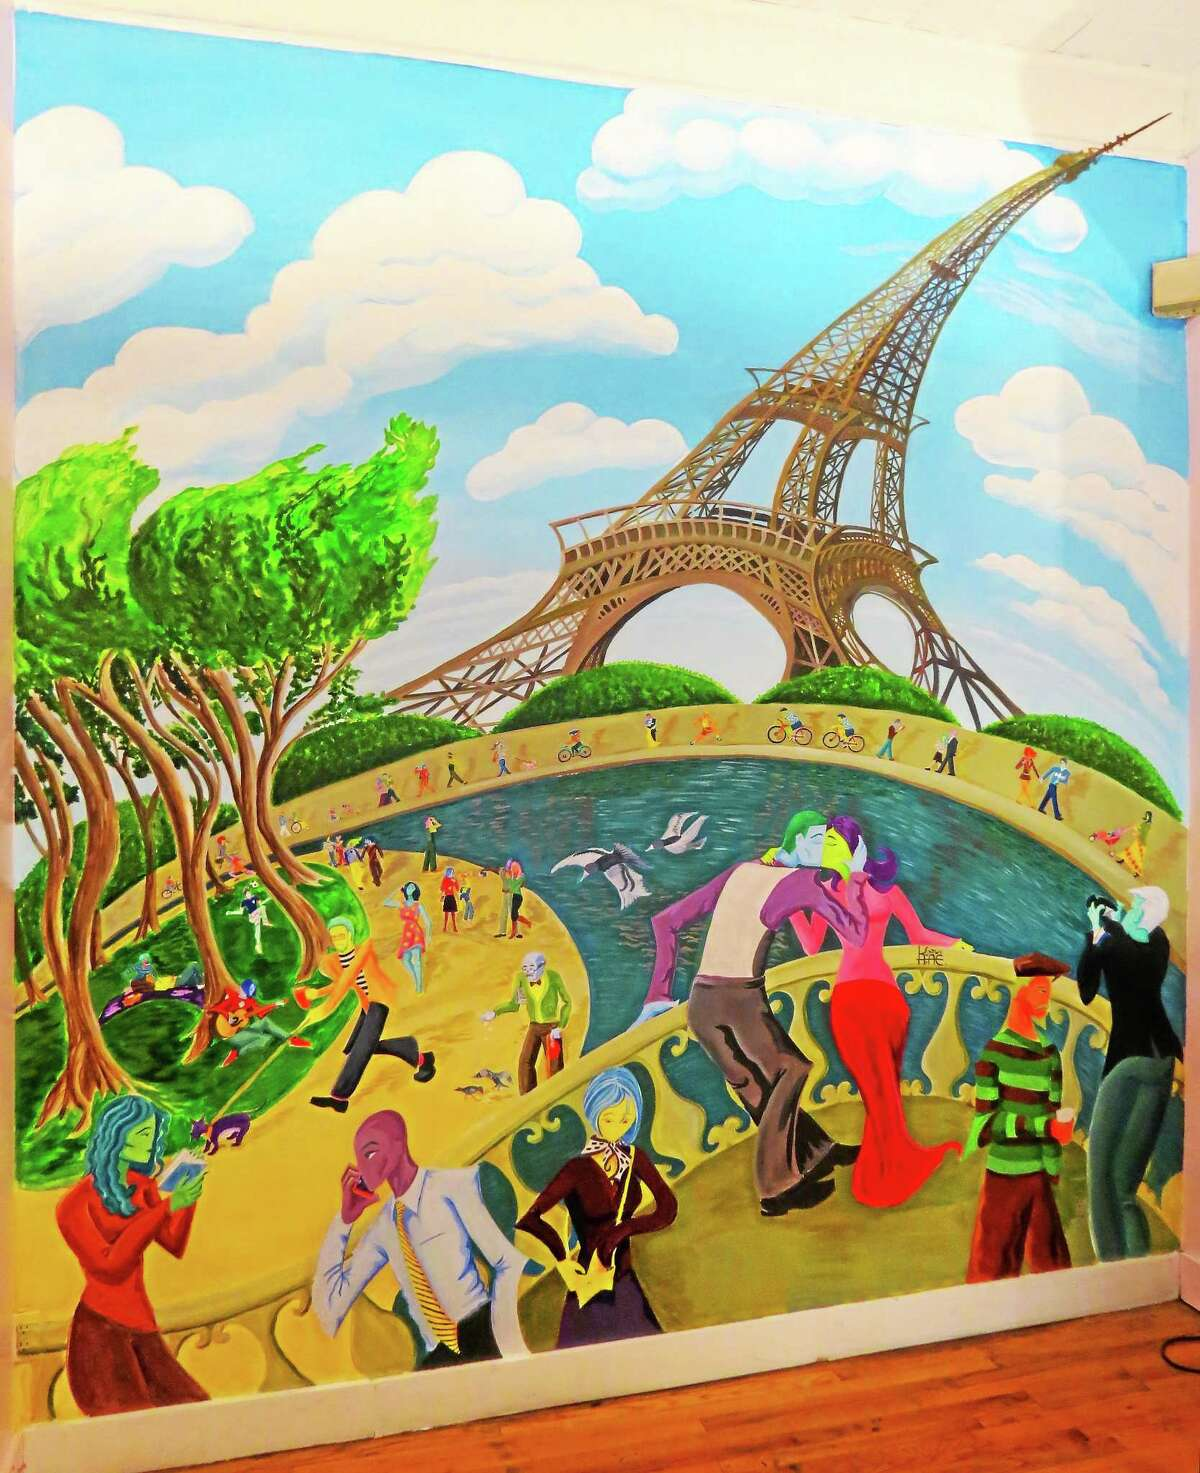 The mural at Marjolaine Pastry Shop.